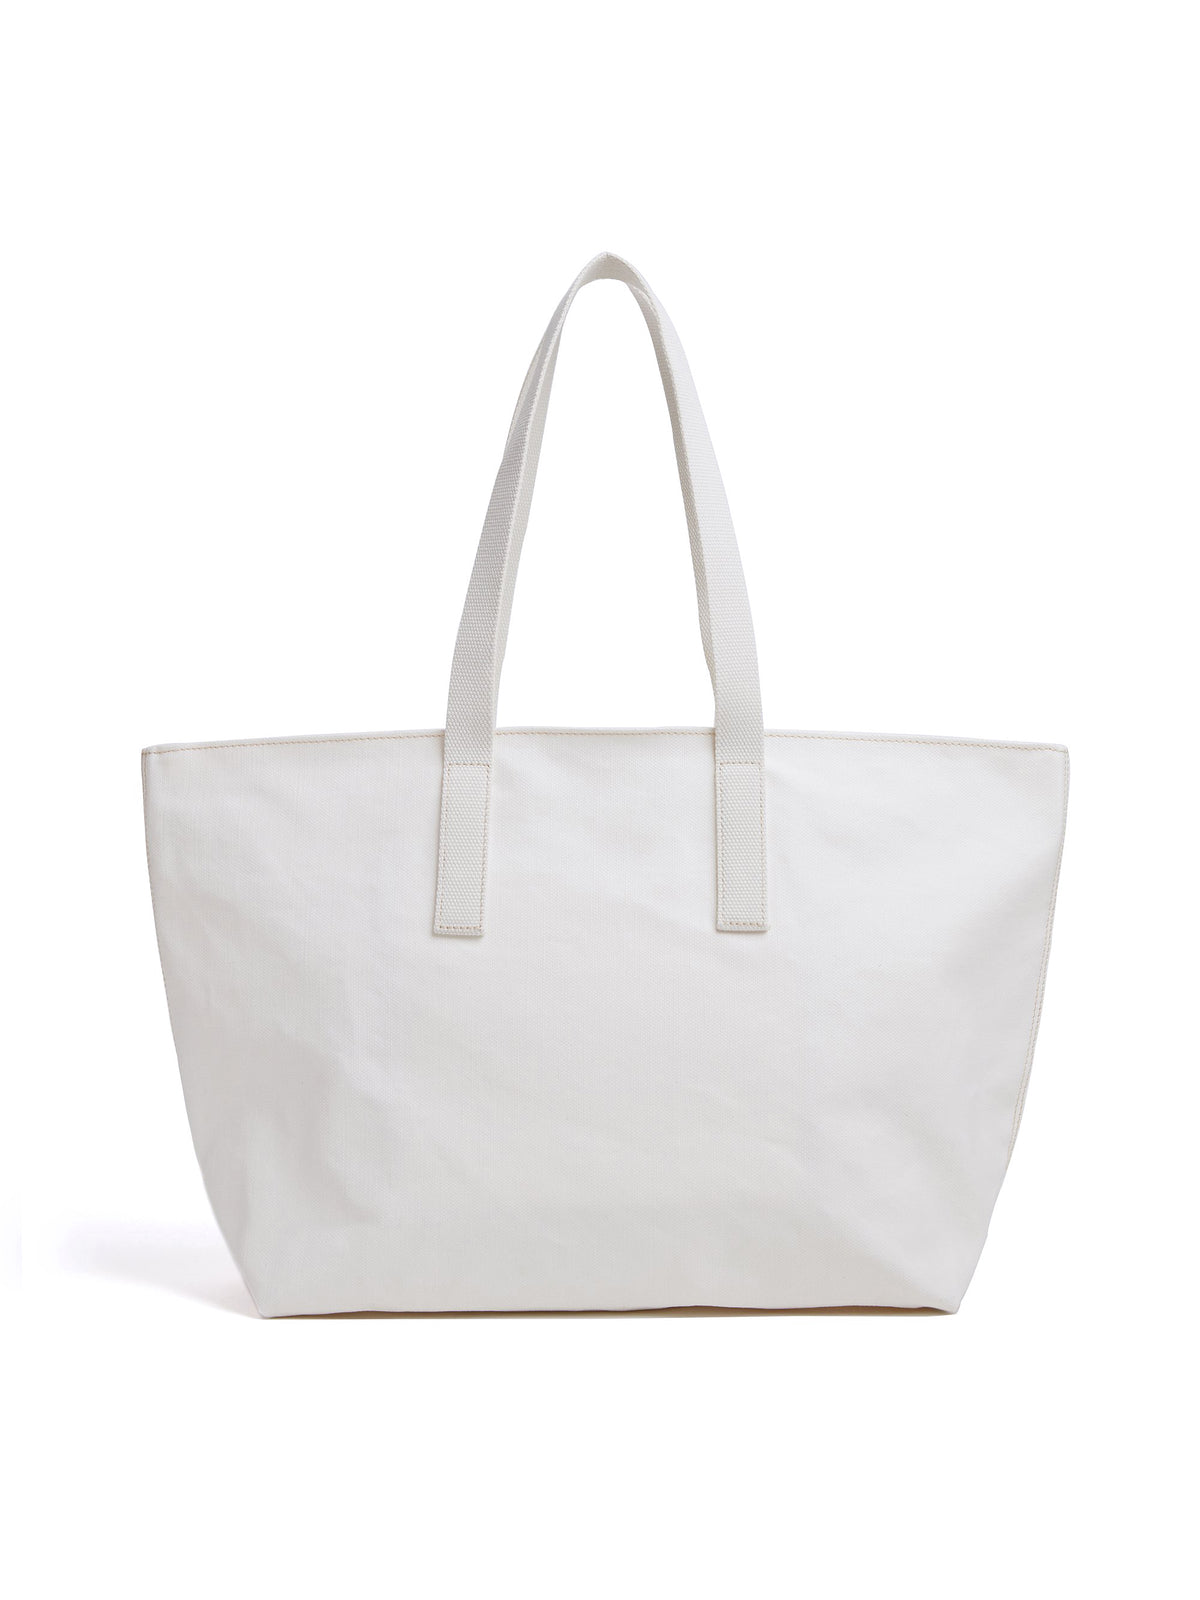 Mark Cross Weatherbird Canvas Small Tote Bag Canvas White Back